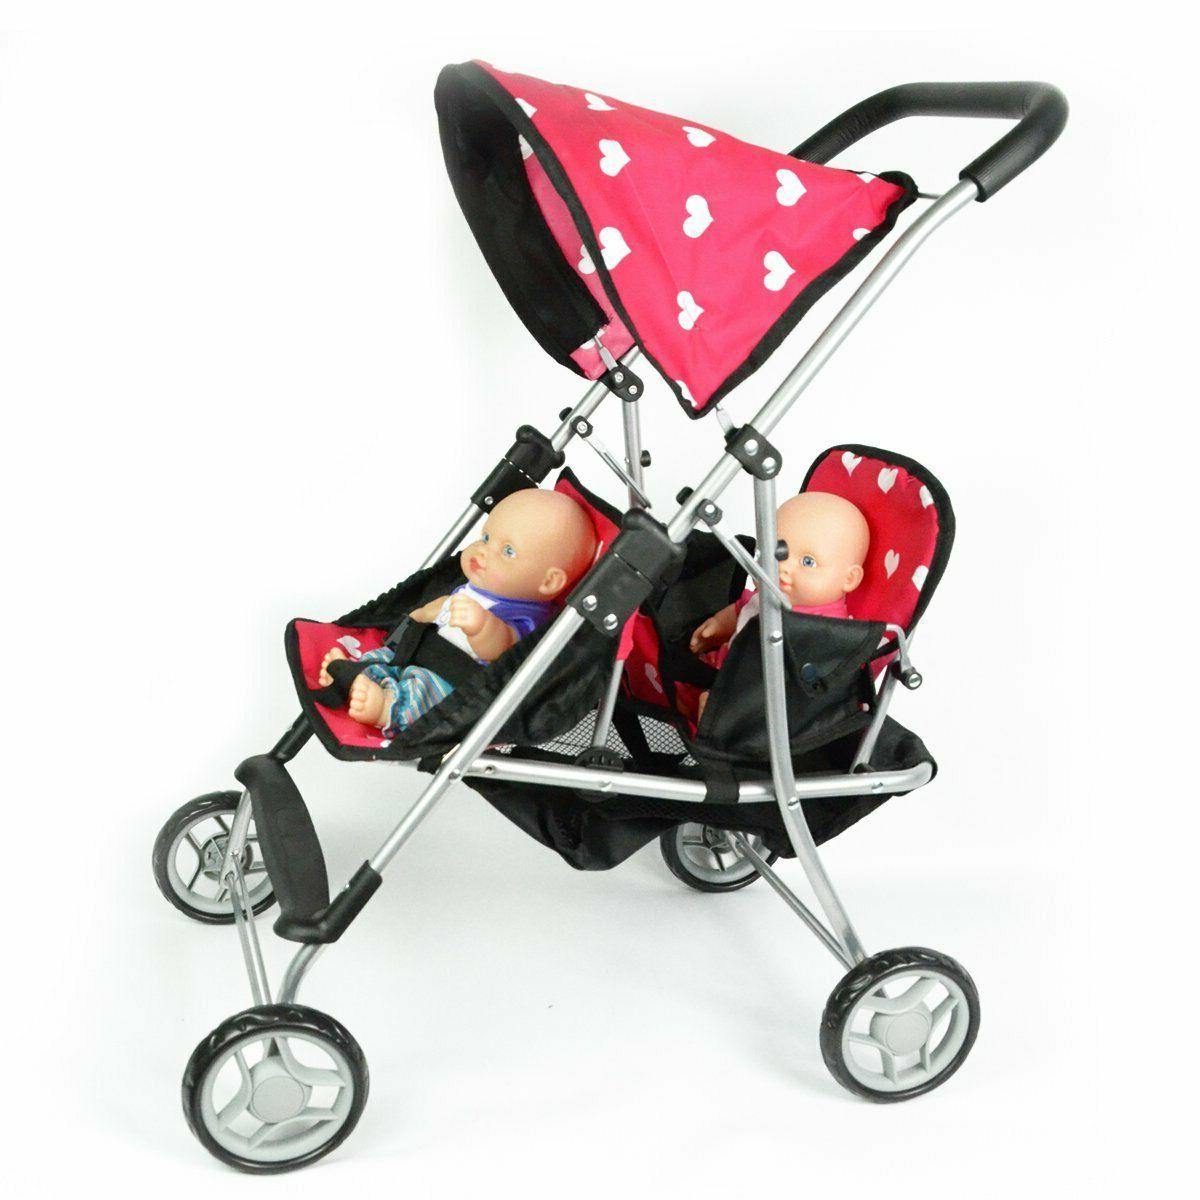 Schwinn Interval Jogging Stroller w/Lockable Swivel Bicycle